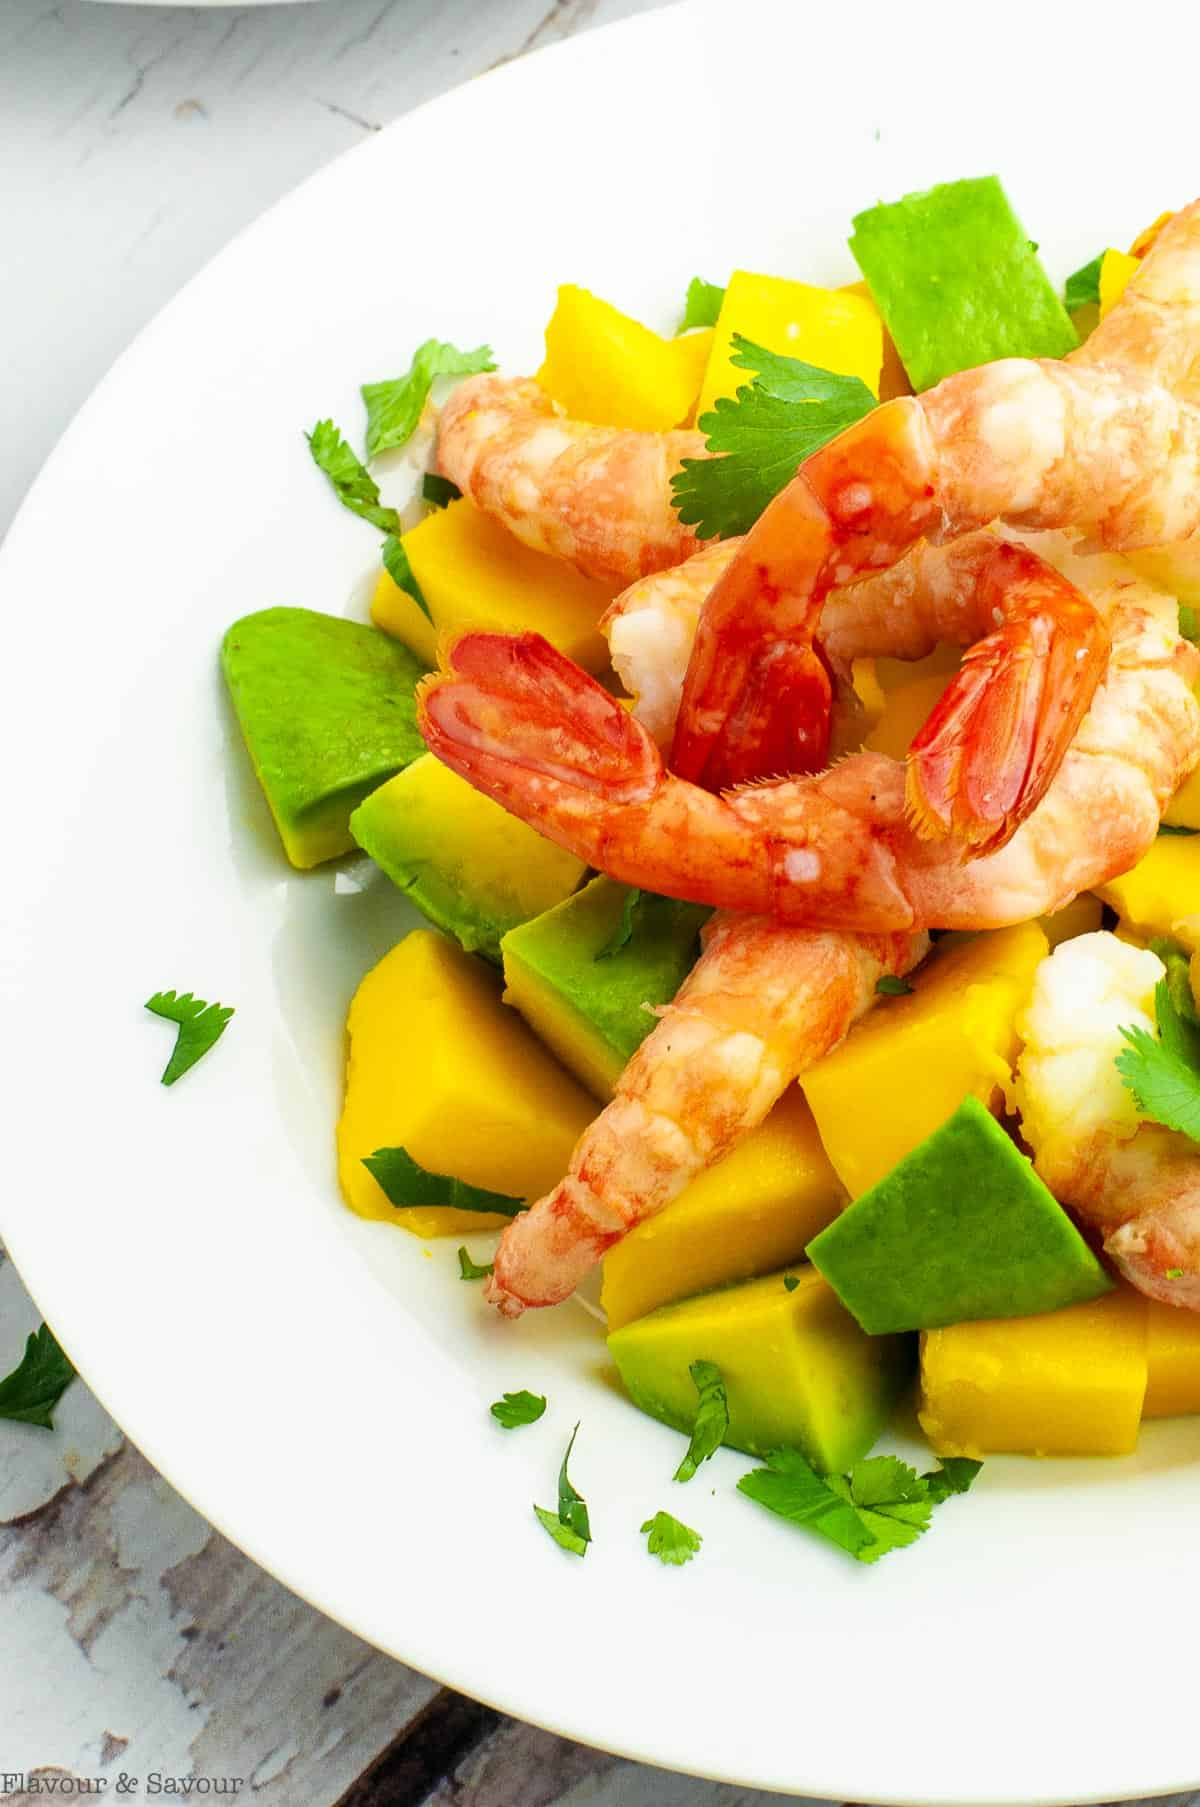 Close up view of a plate filled prawns, mangoes and avocado cubes